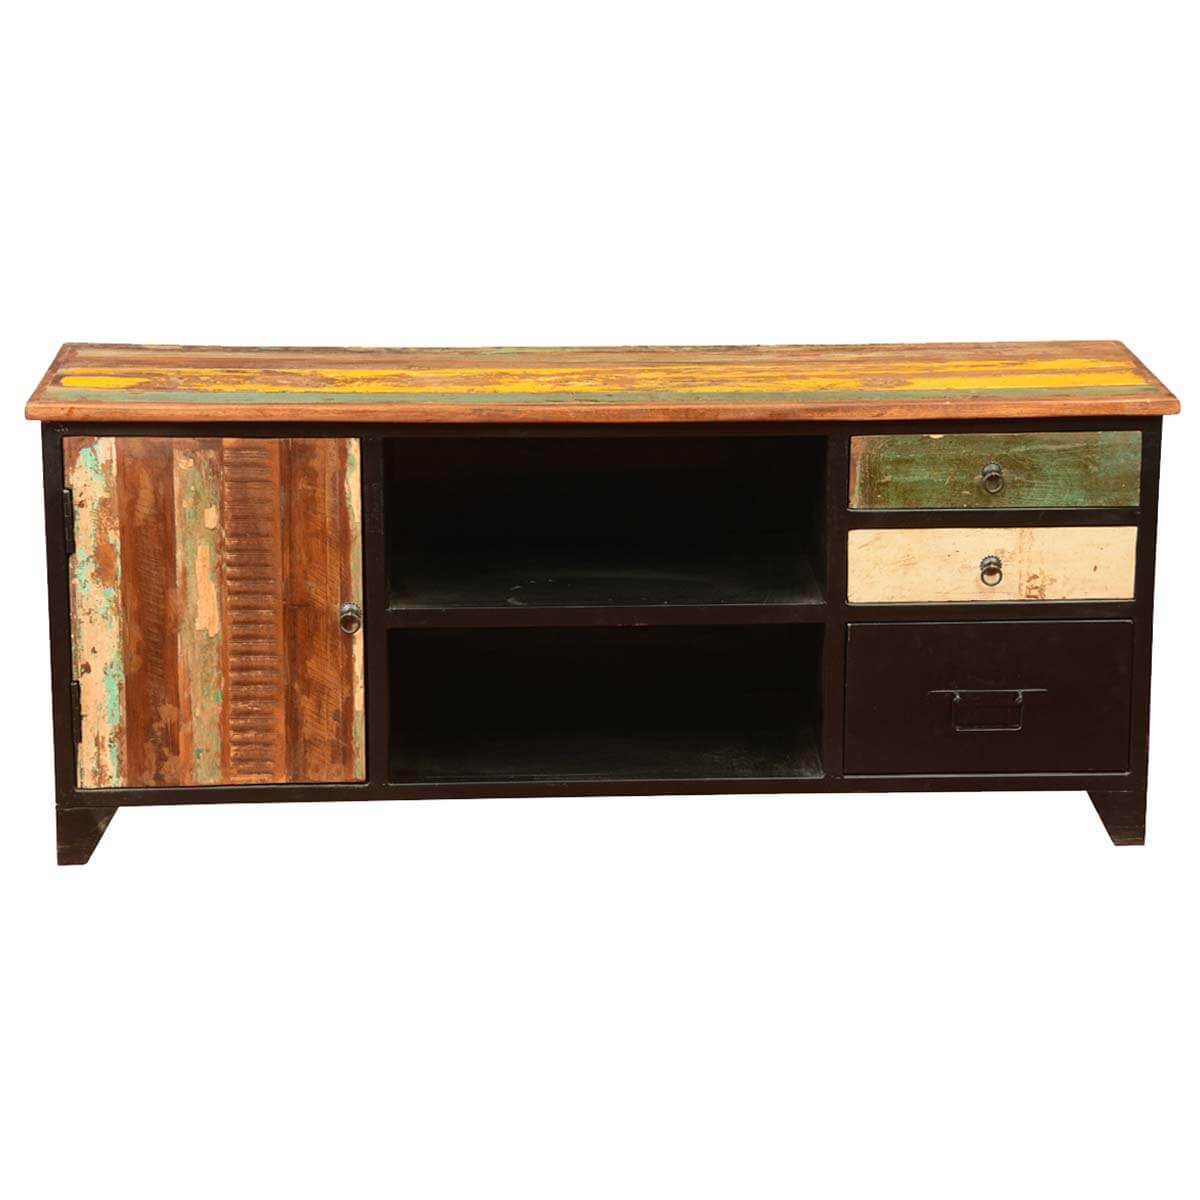 Stewart rustic reclaimed wood industrial tv media console for Barnwood media cabinet